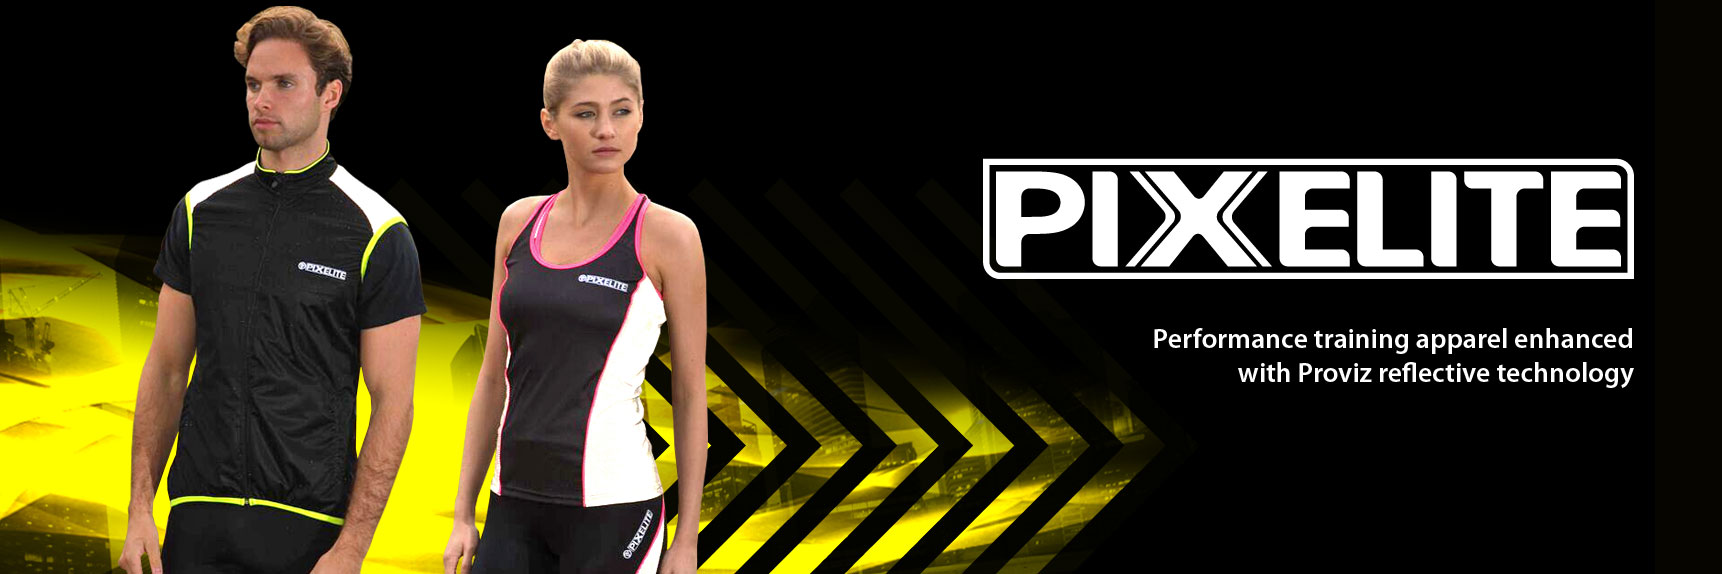 The PixElite Collection